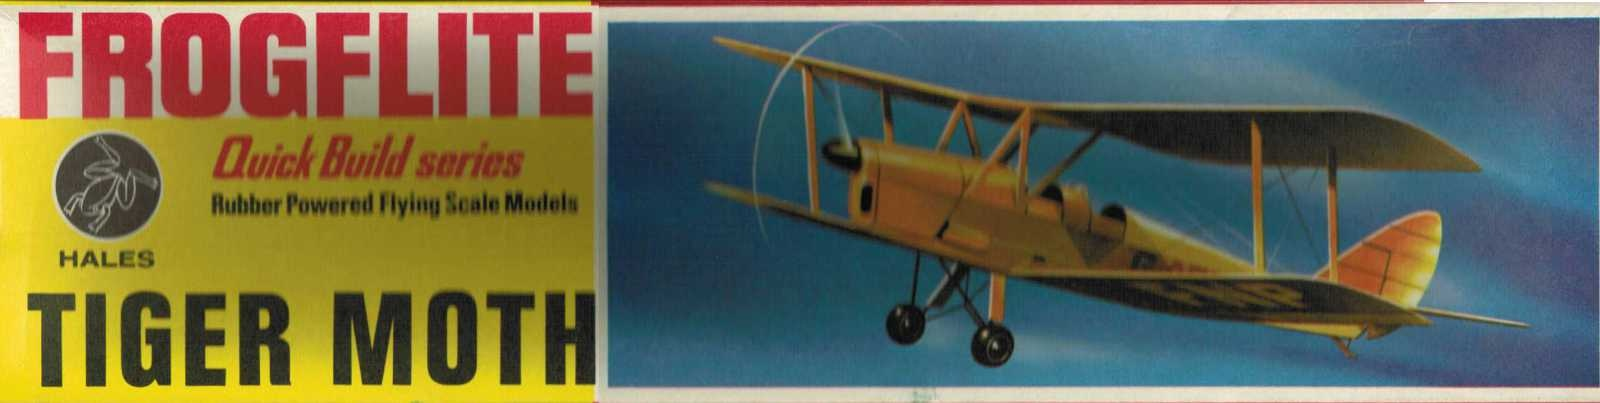 https://0201.nccdn.net/4_2/000/000/038/2d3/FF-Tiger-Moth-Box-Art-1600x403.jpg